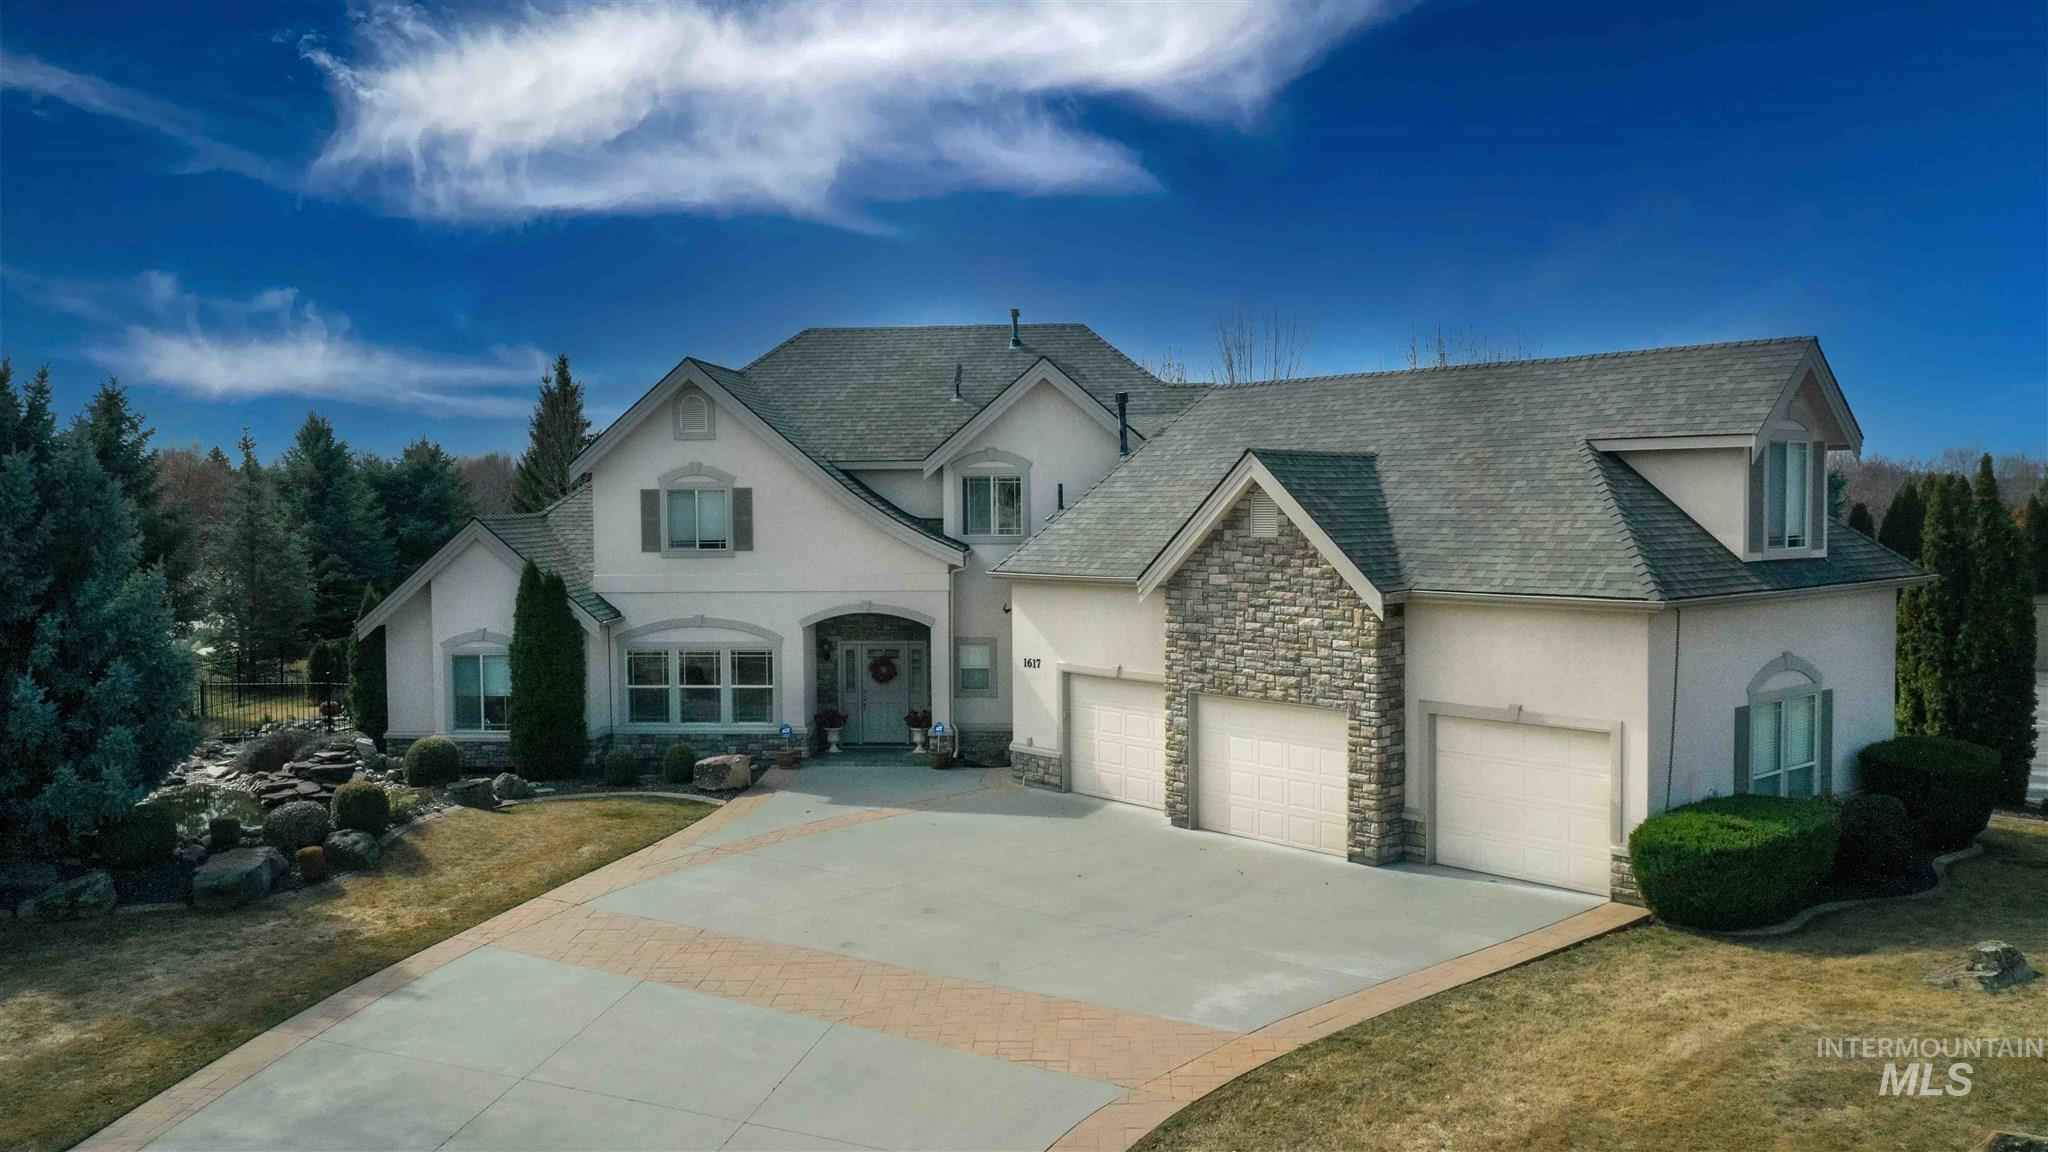 1617 N Dragonfly Pl Property Photo - Eagle, ID real estate listing